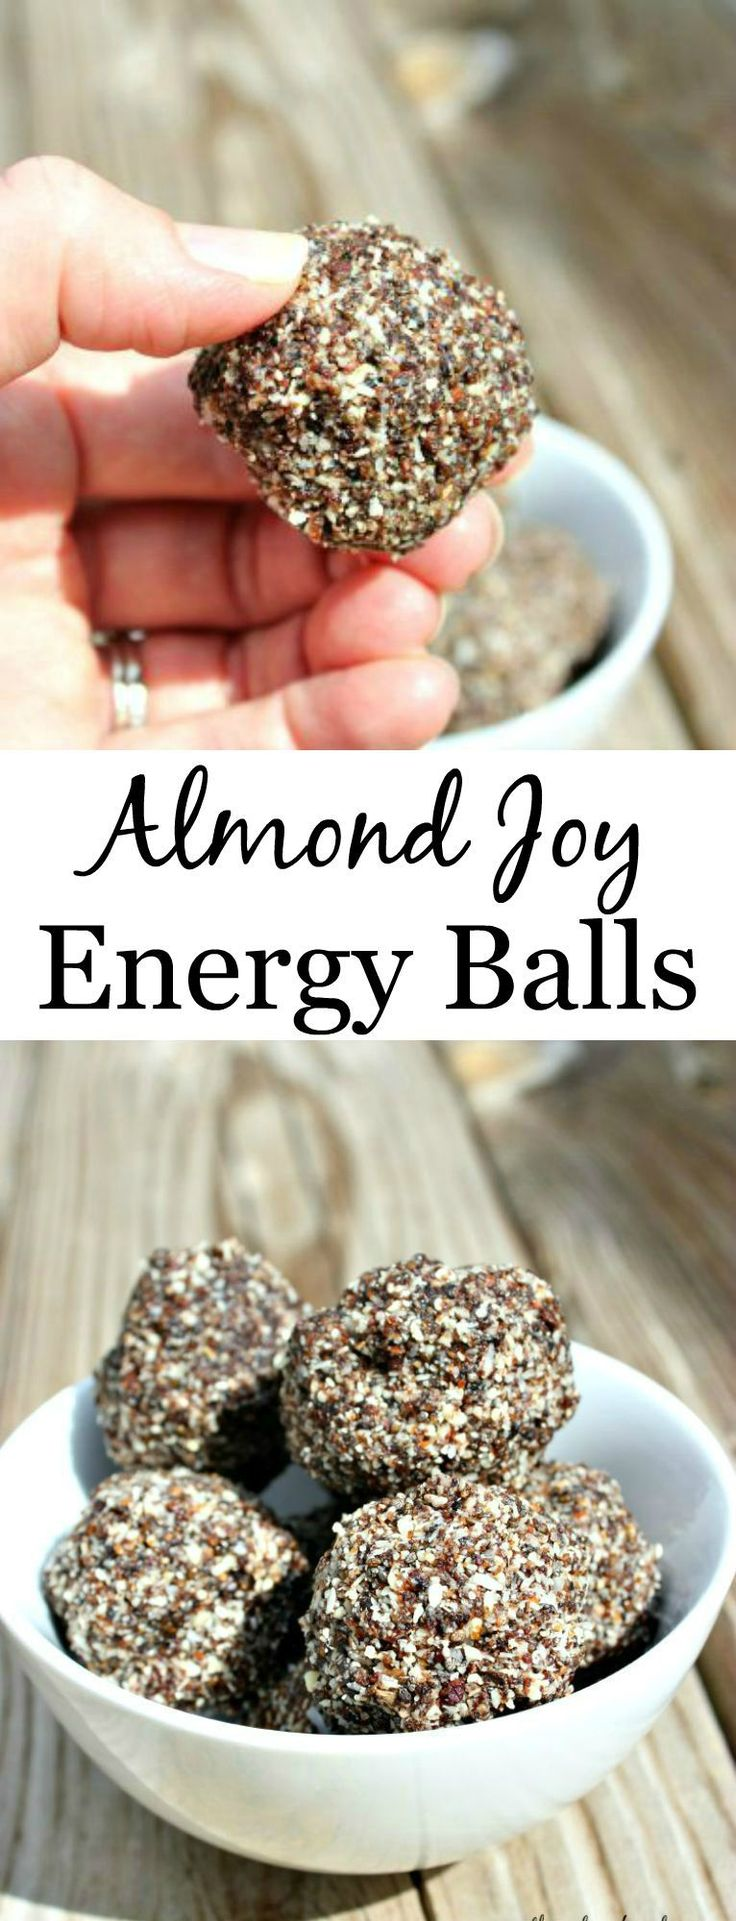 Almond Joy Energy Balls are the perfect healthy snack that is super healthy